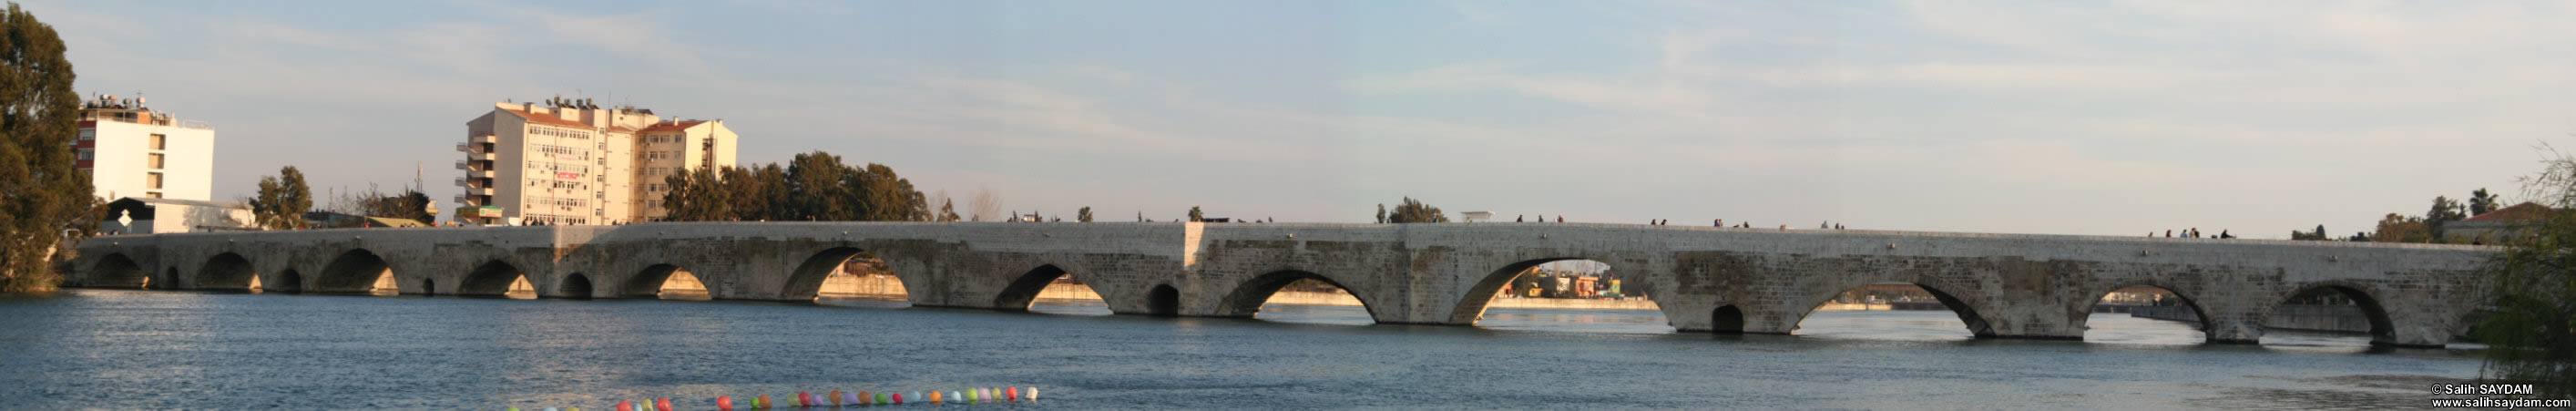 Panorama #02 of Taskopru (Stone Bridge), which was build over the River Seyhan by the Roman Emperor Hadrianus in the 4th century.